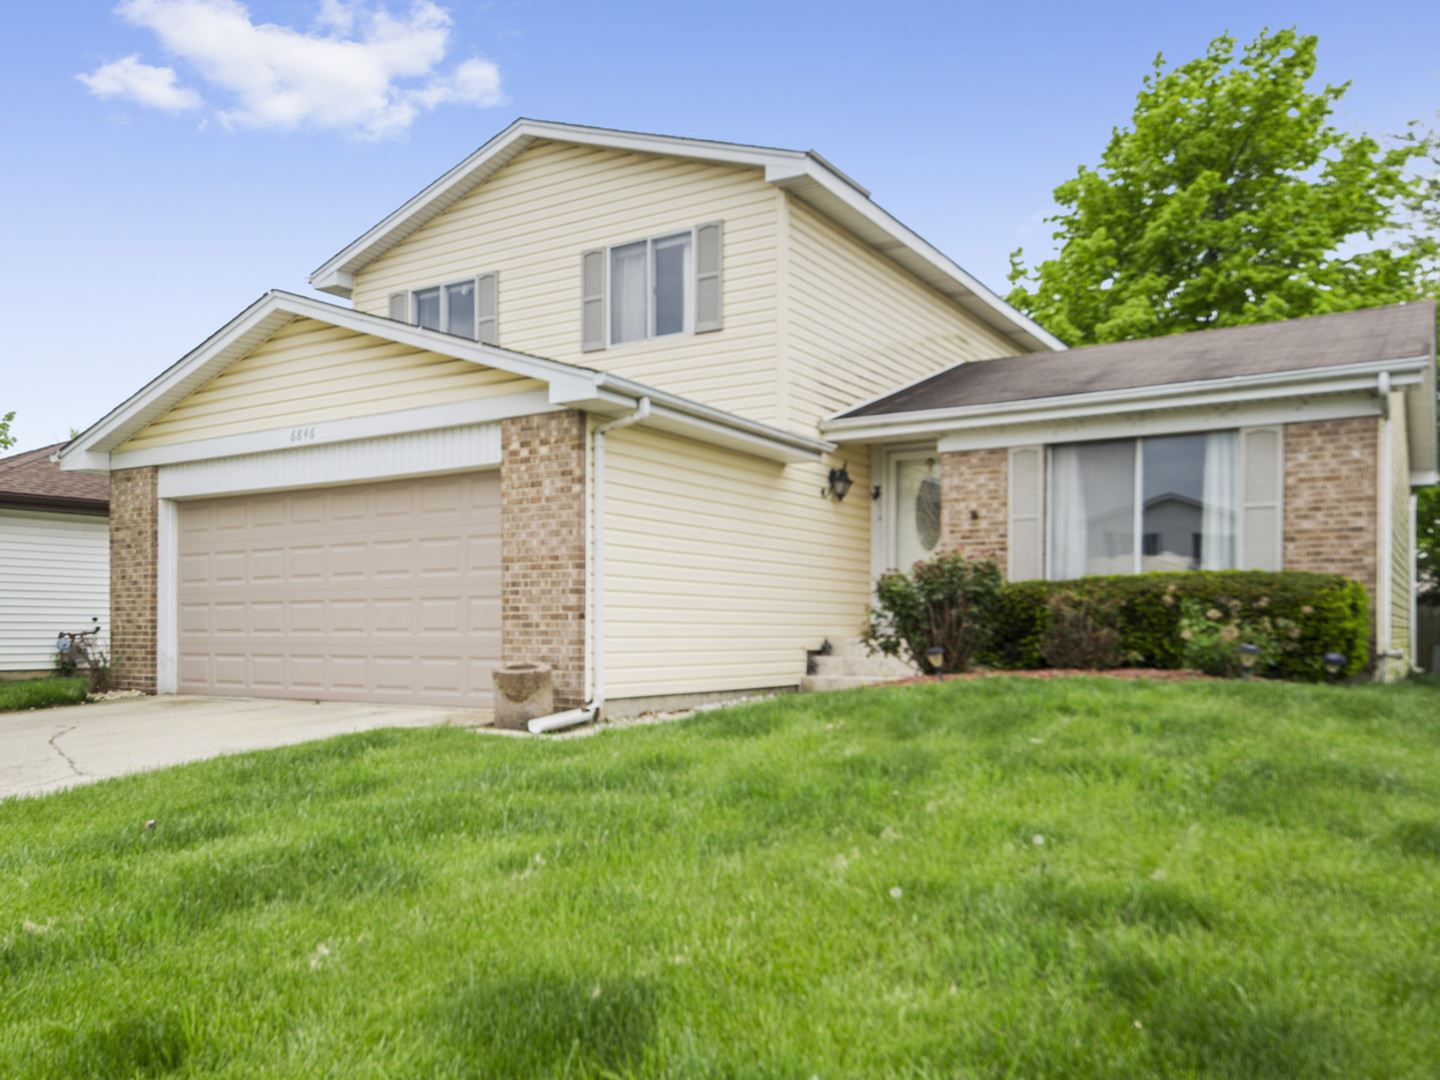 6846 DOVE Avenue, Woodridge, IL 60517 - #: 10727214